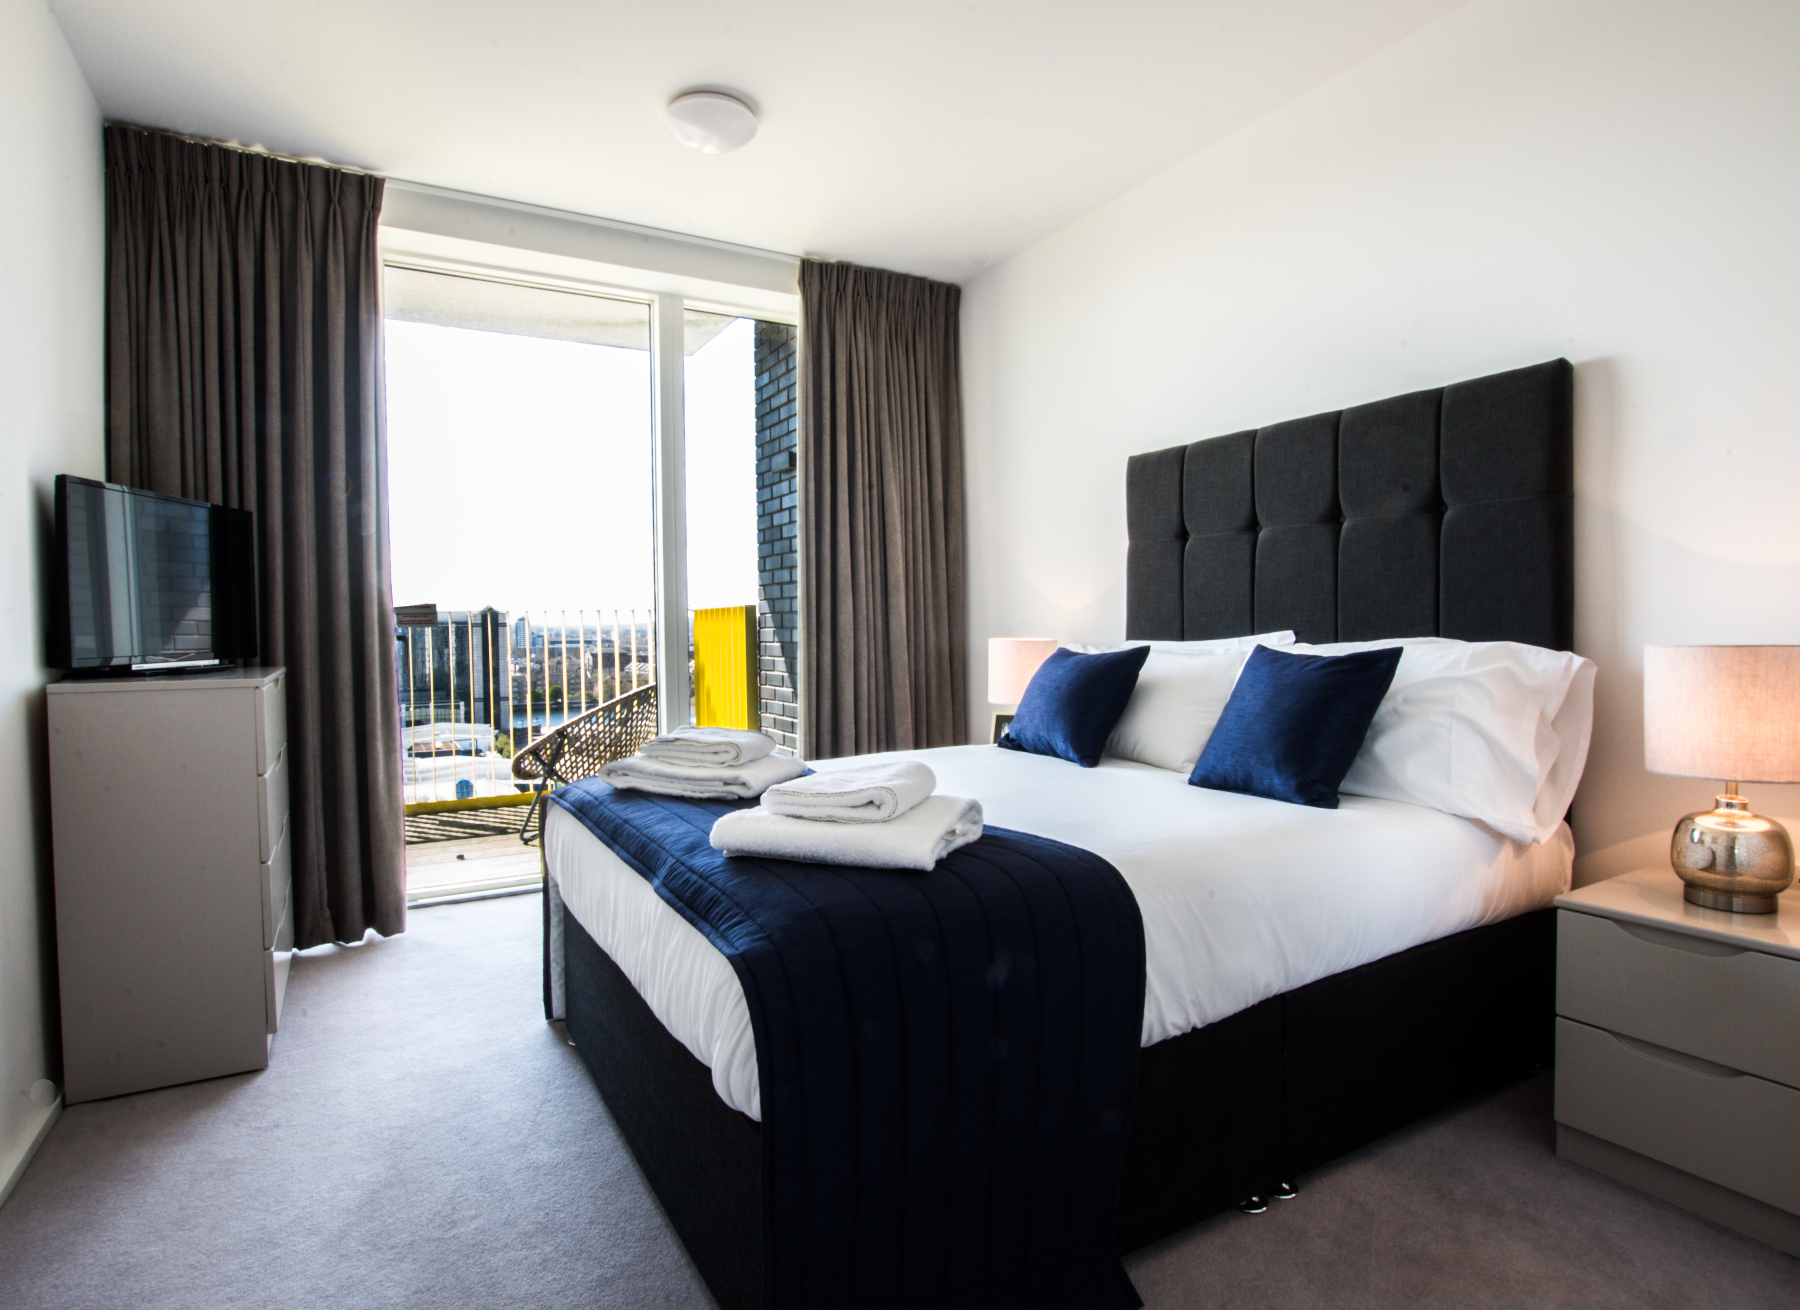 Bedroom at Millharbour Apartments, Isle of Dogs, London - Citybase Apartments